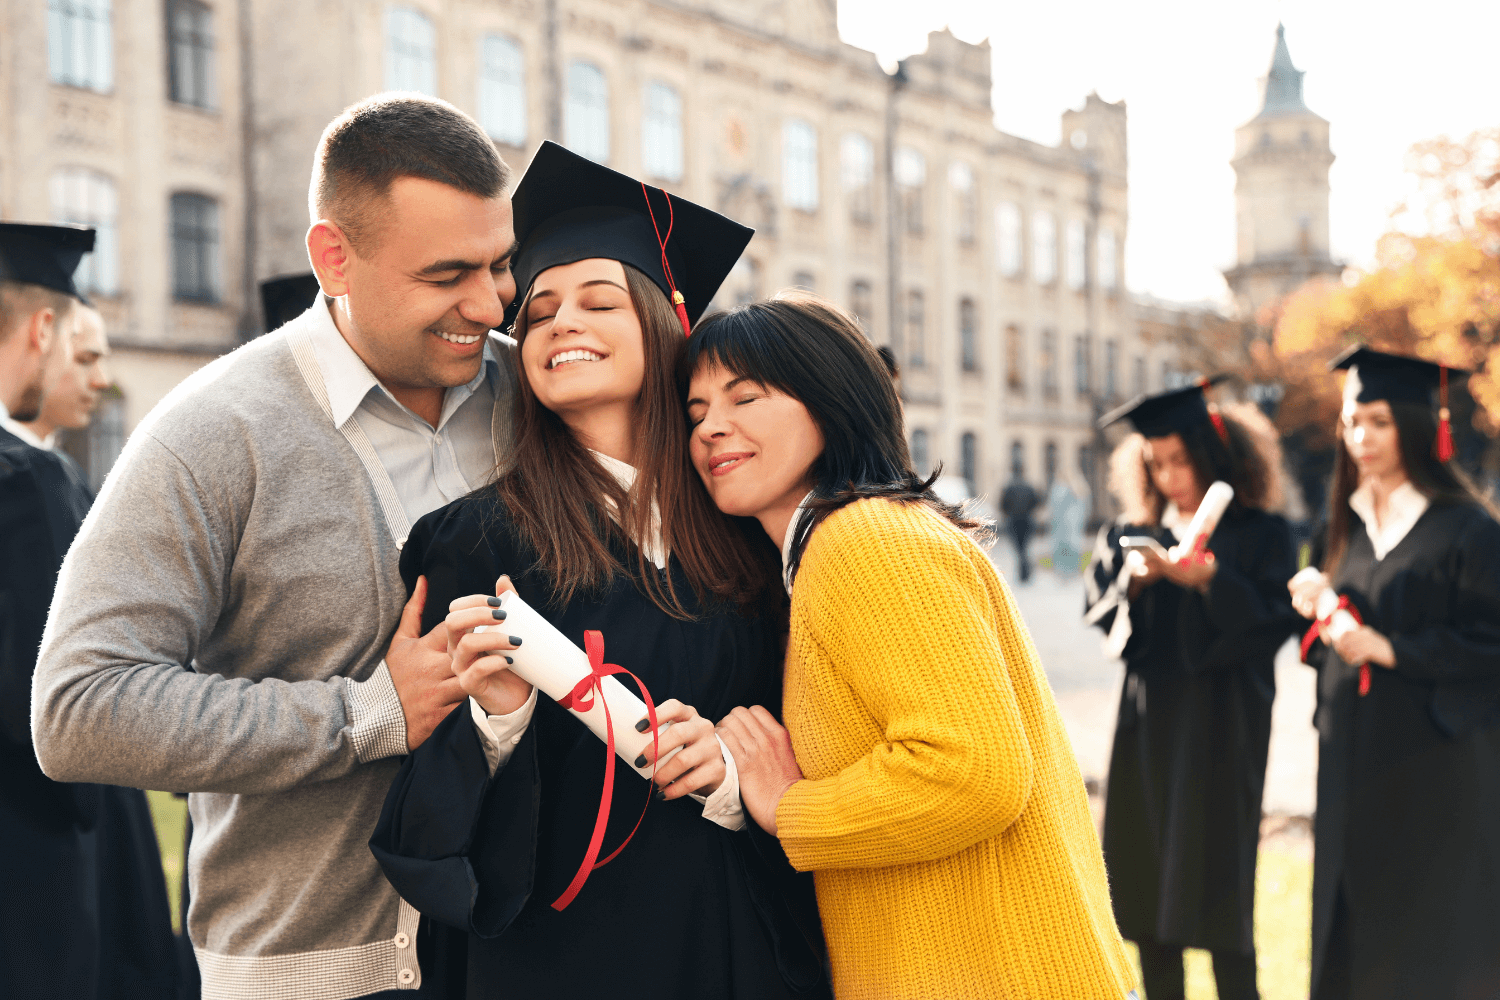 Parents hugging their daughter who just graduated college